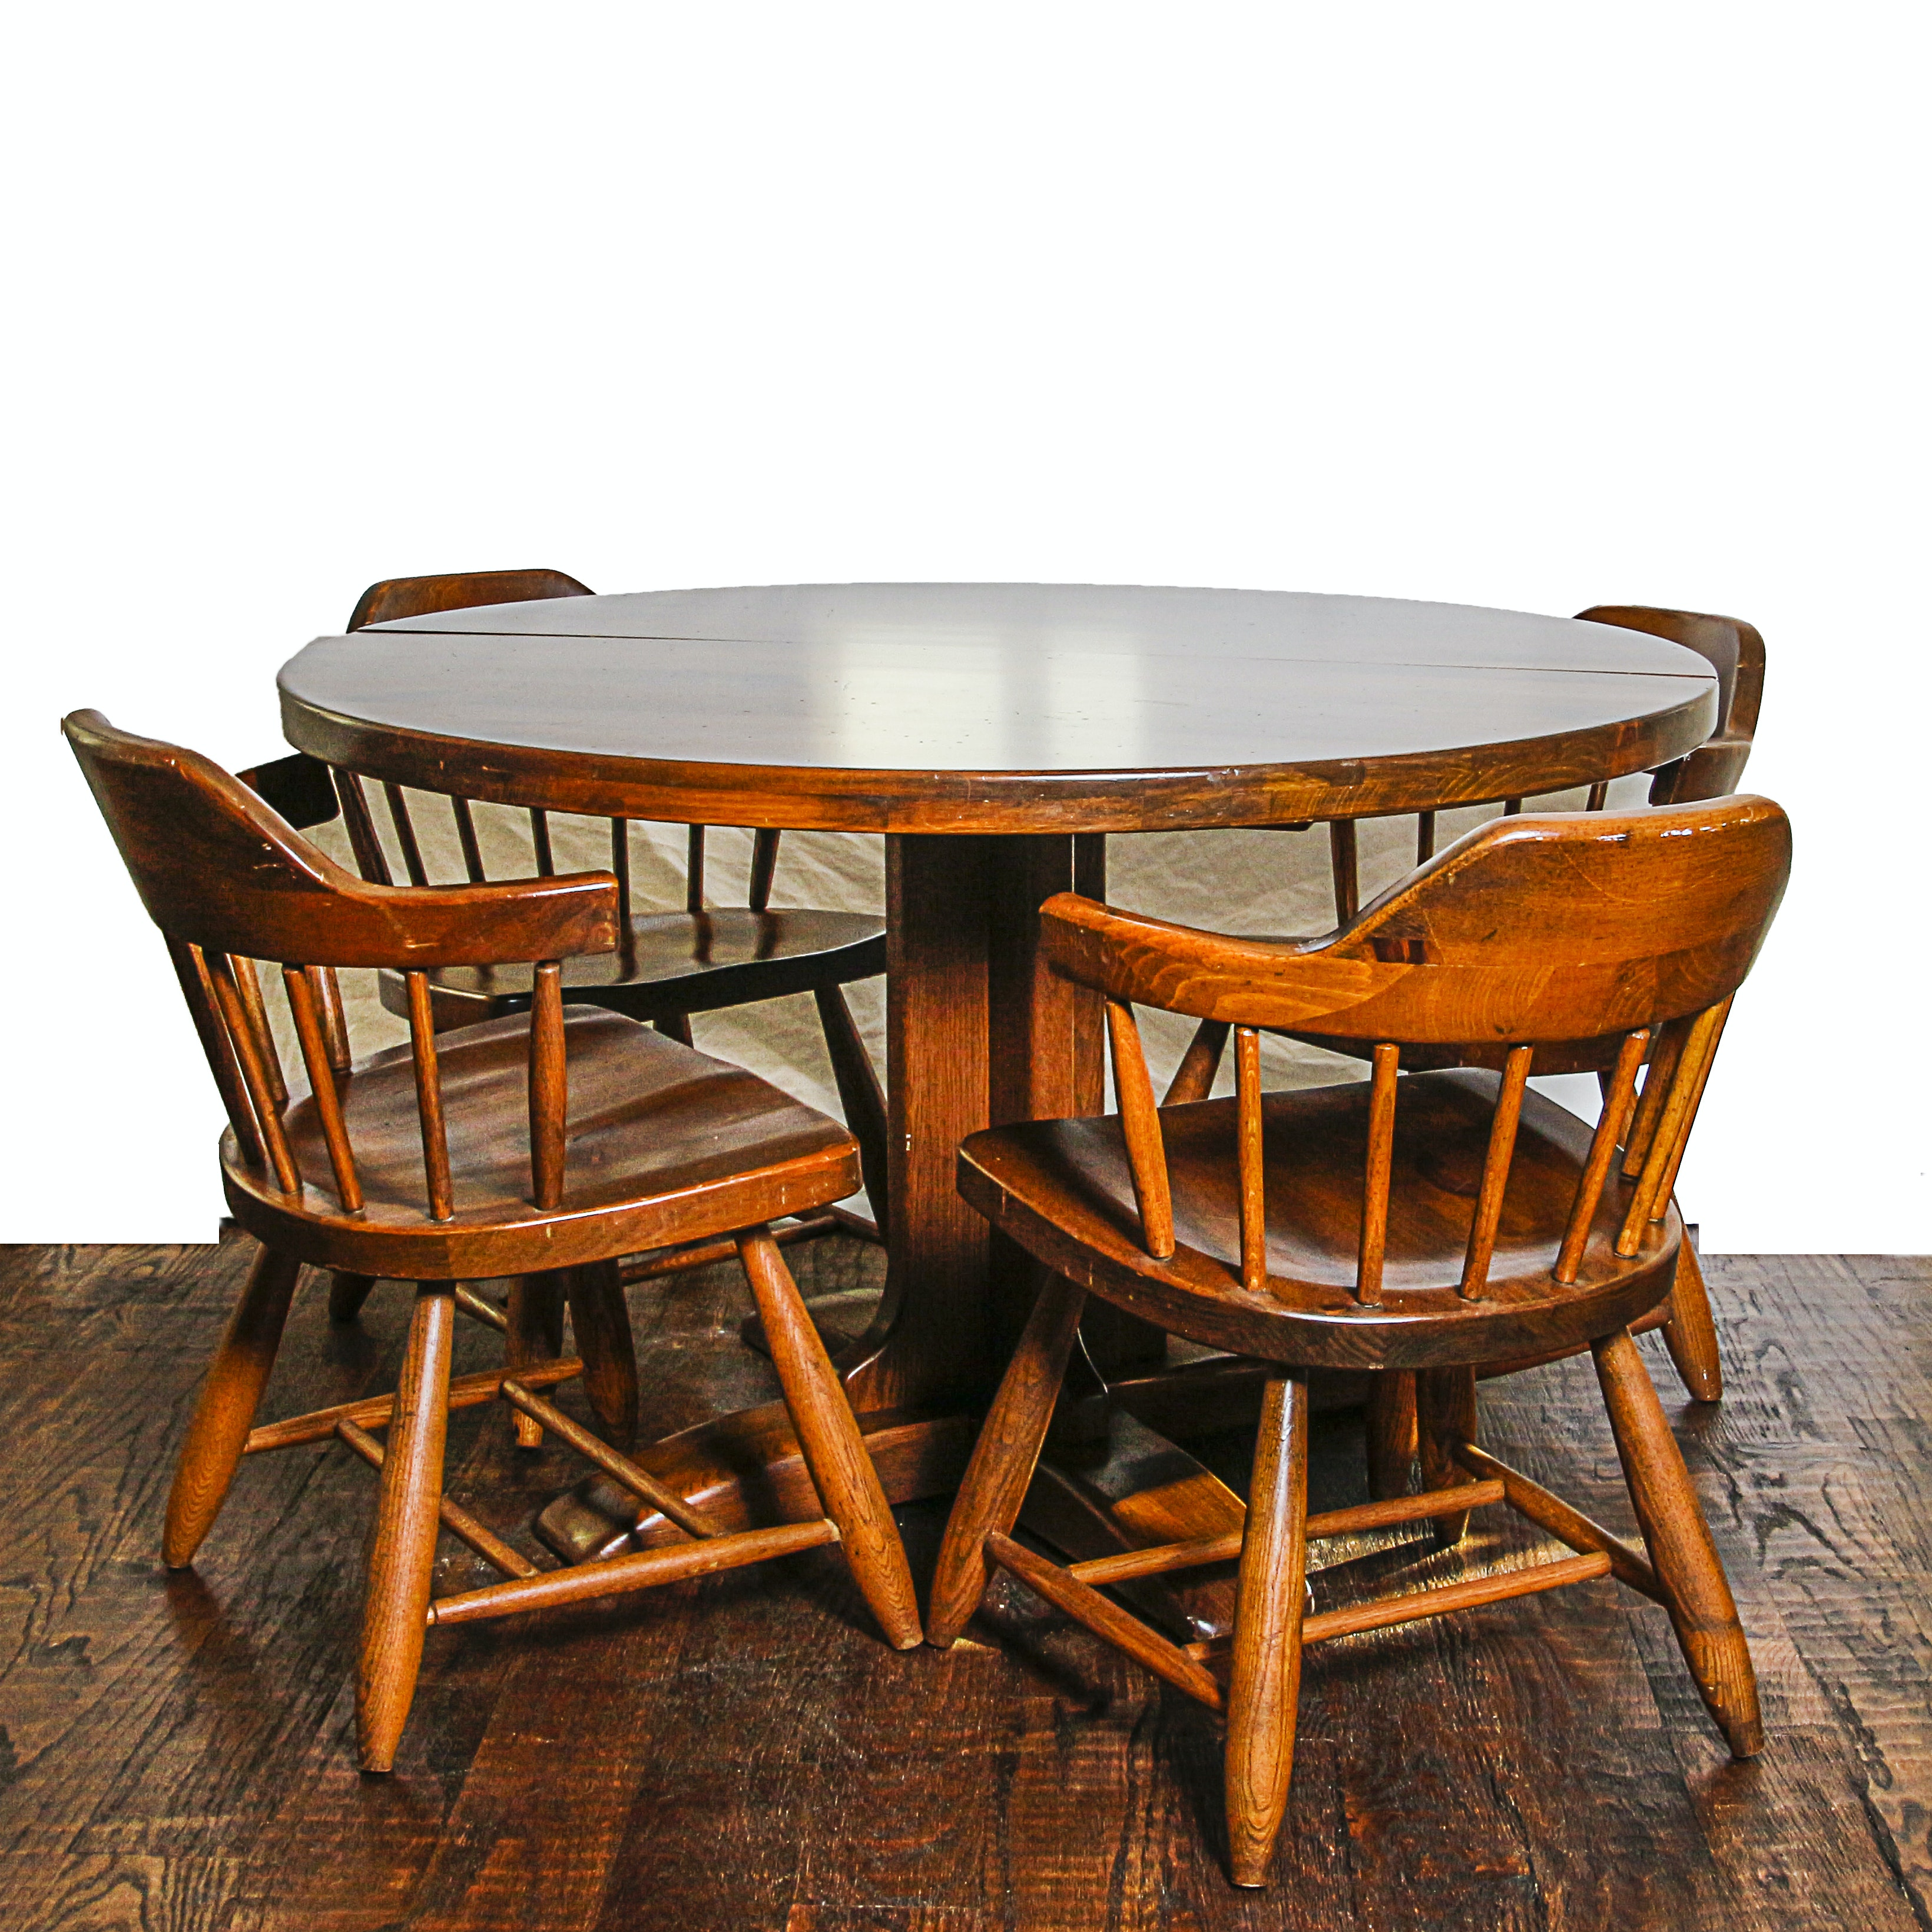 Colonial Style Oak Pedestal Table and Four Chairs